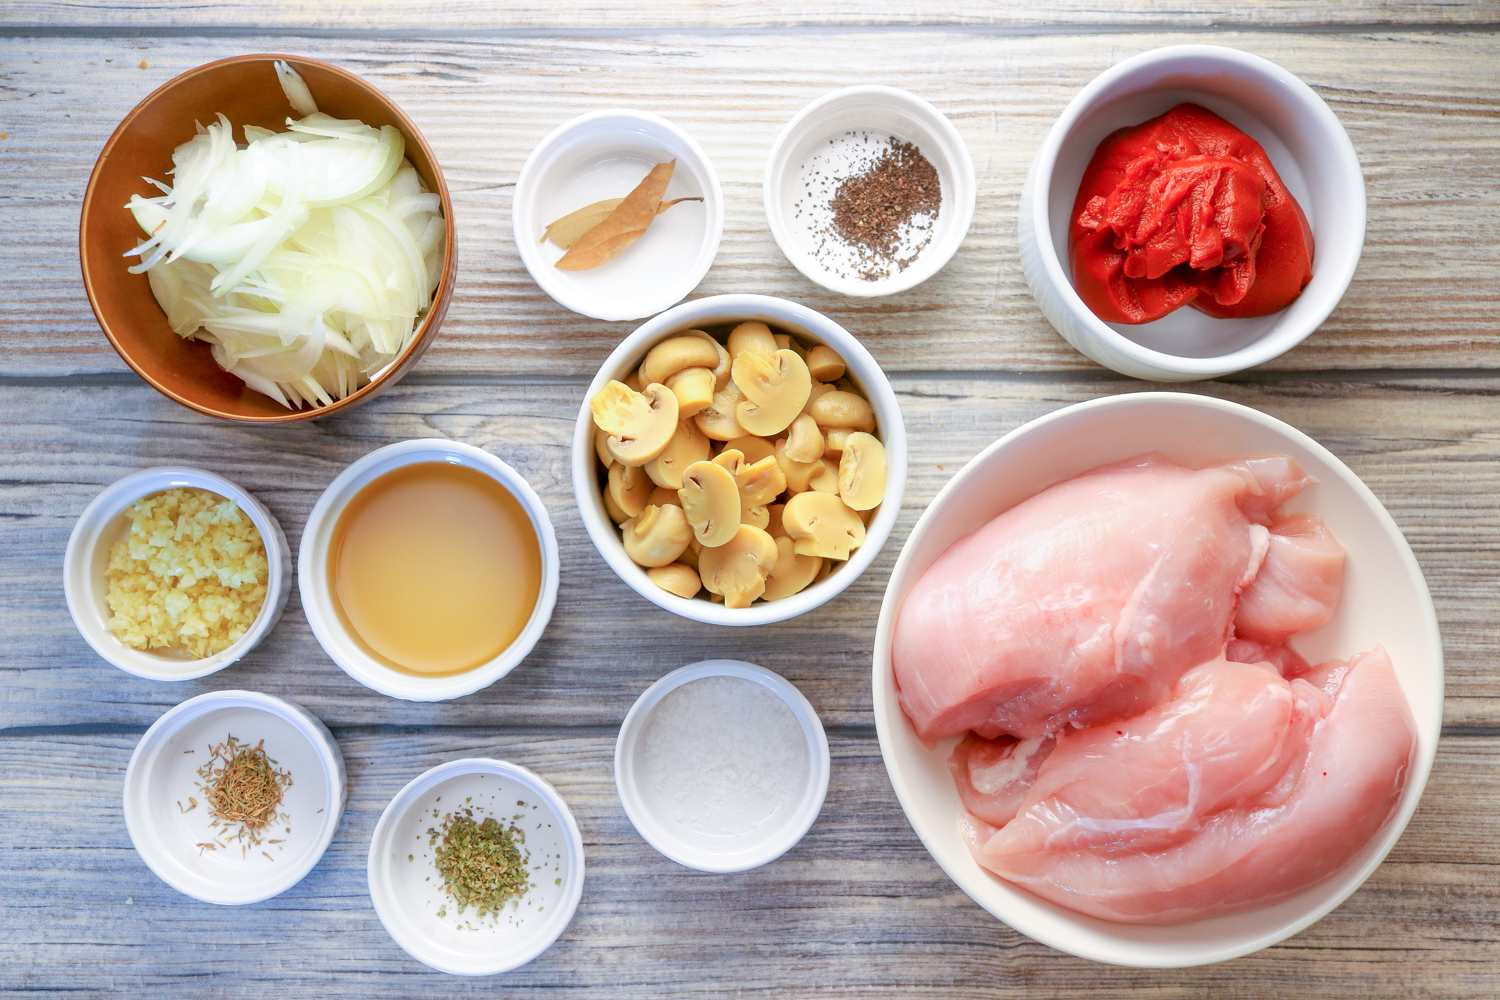 Ingredients for slow cooker chicken cacciatore